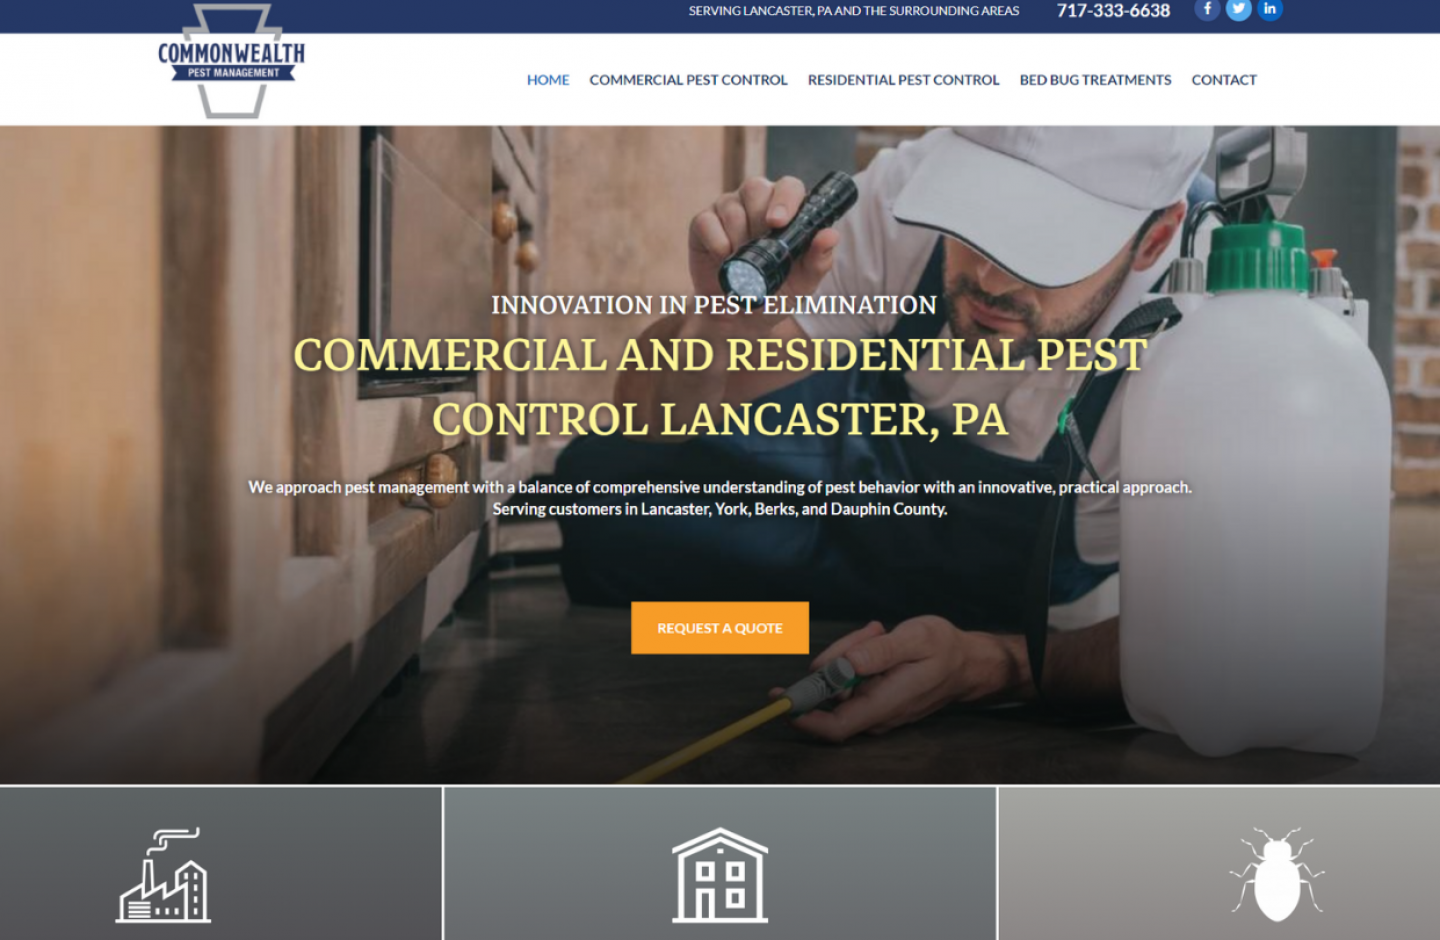 Commonwealth Pest Management